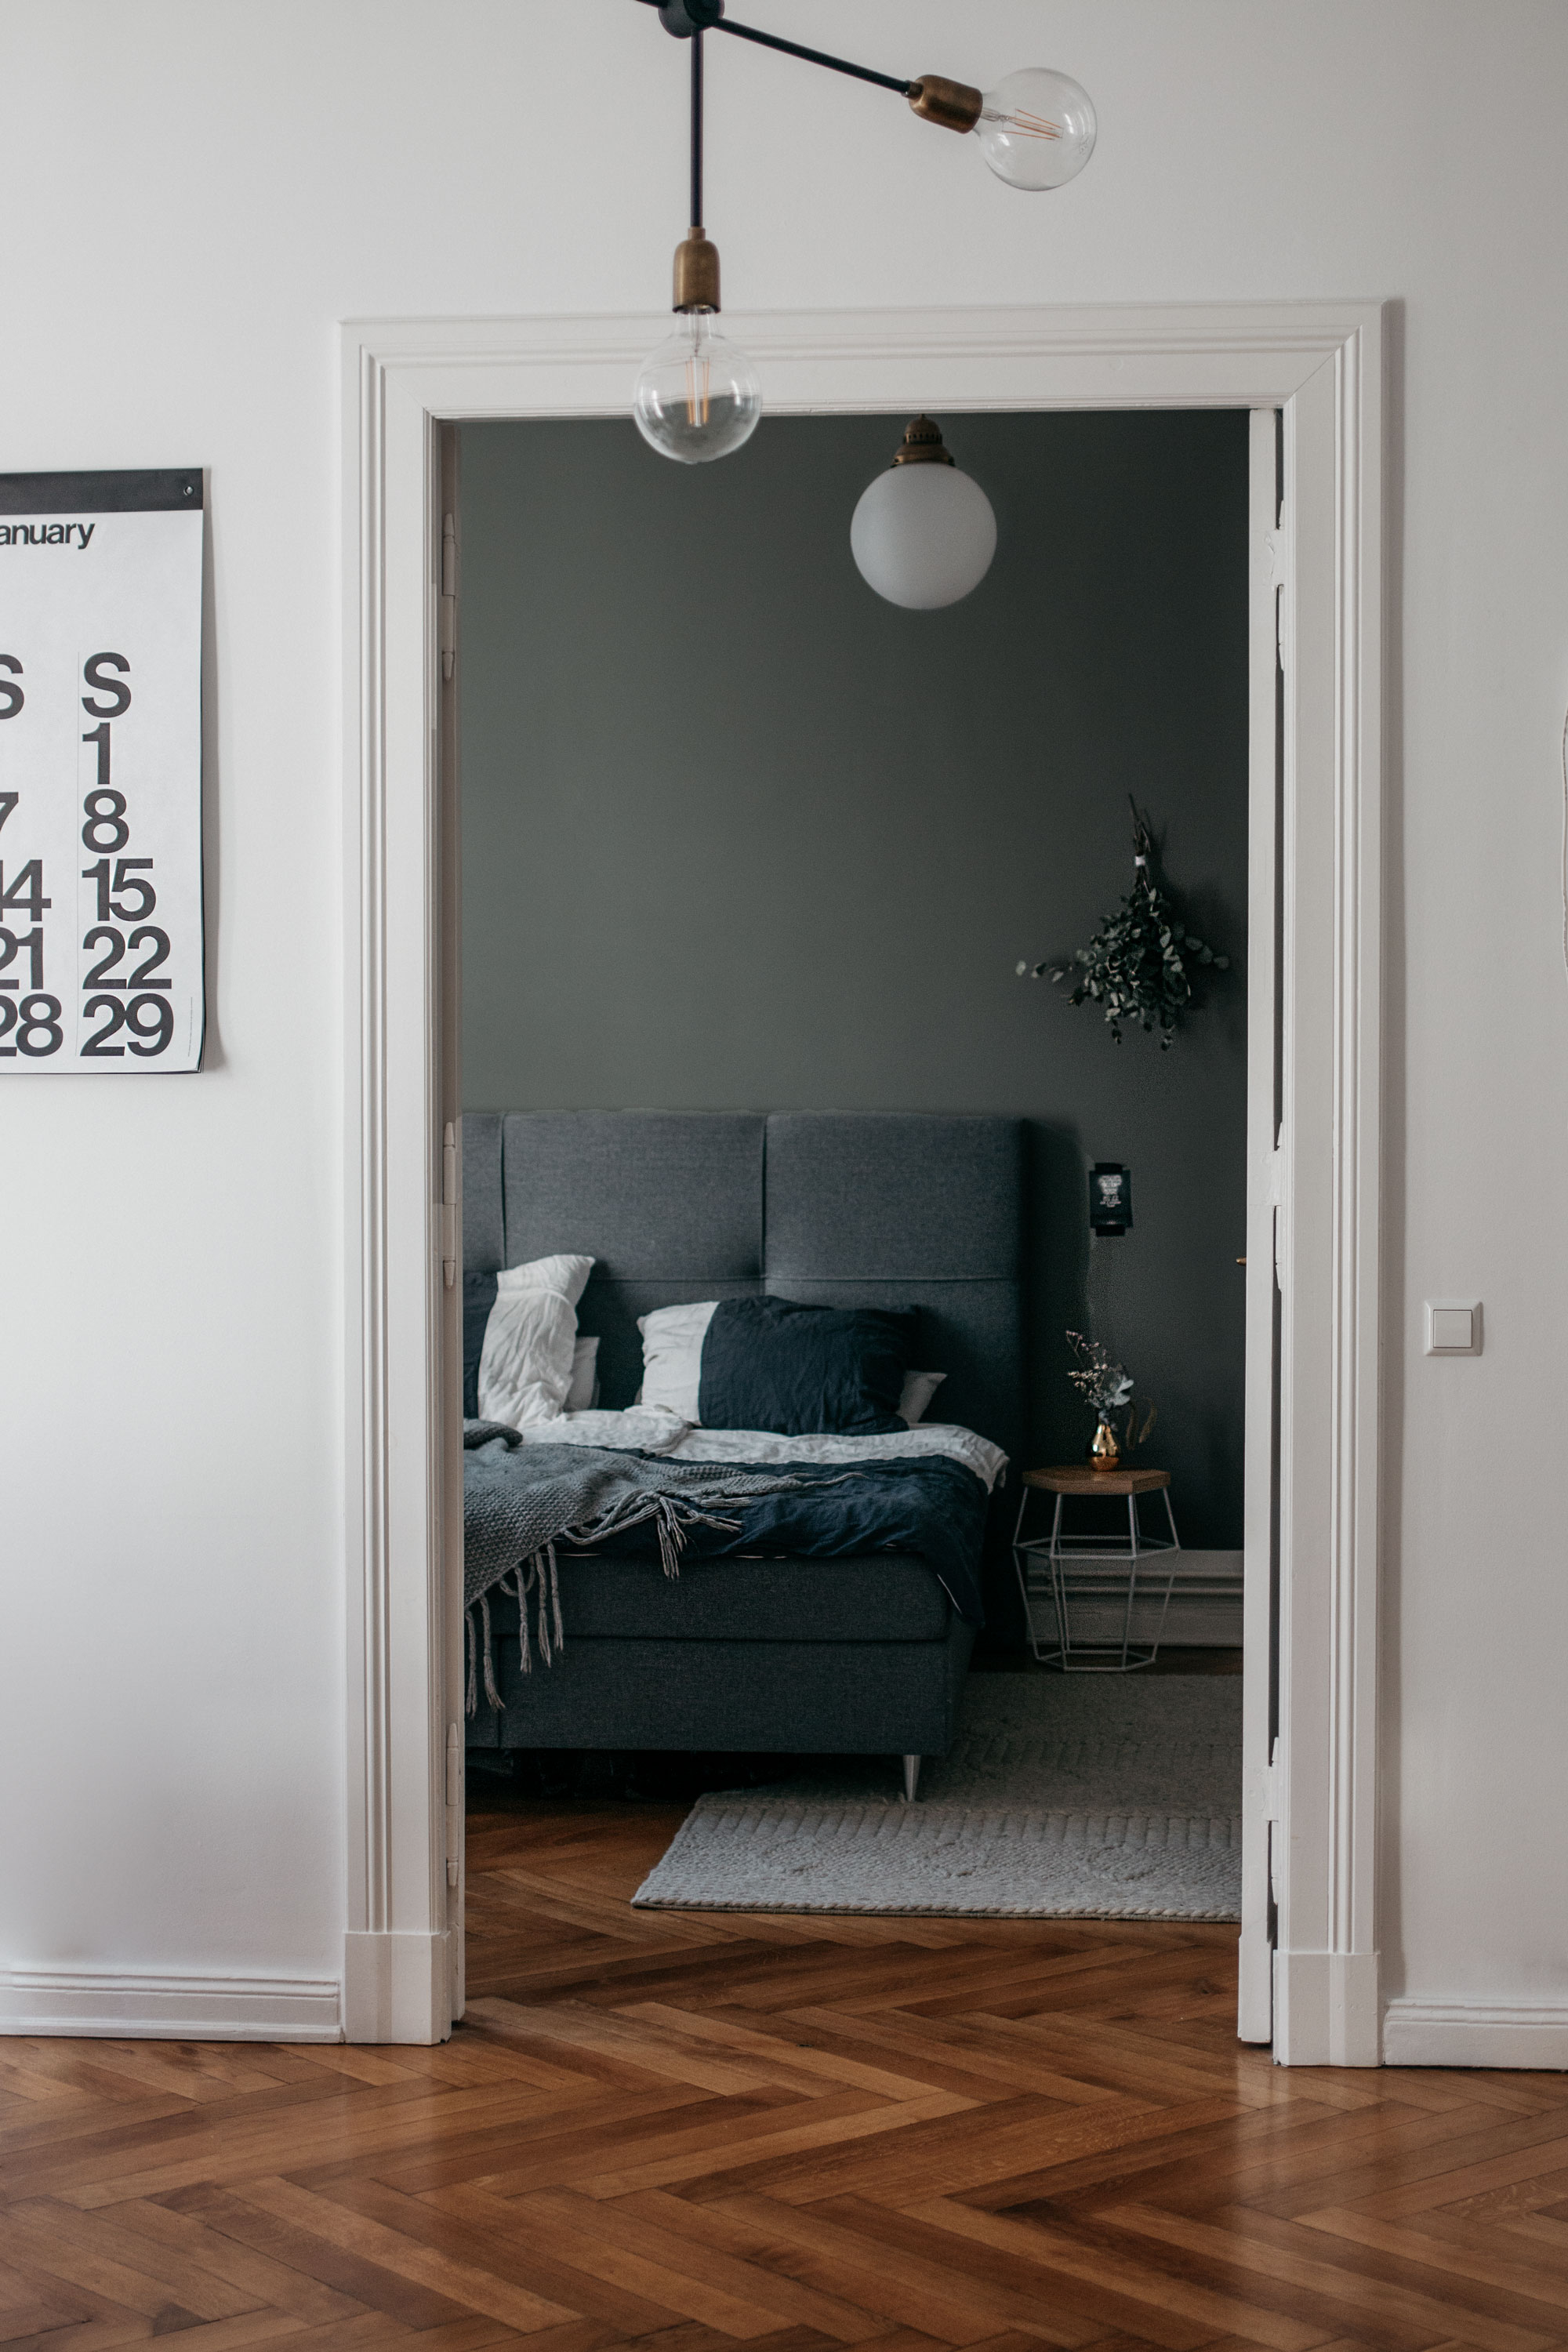 Bedroom inspiration | interior goals | scandinavian home in Berlin Mitte | apartment